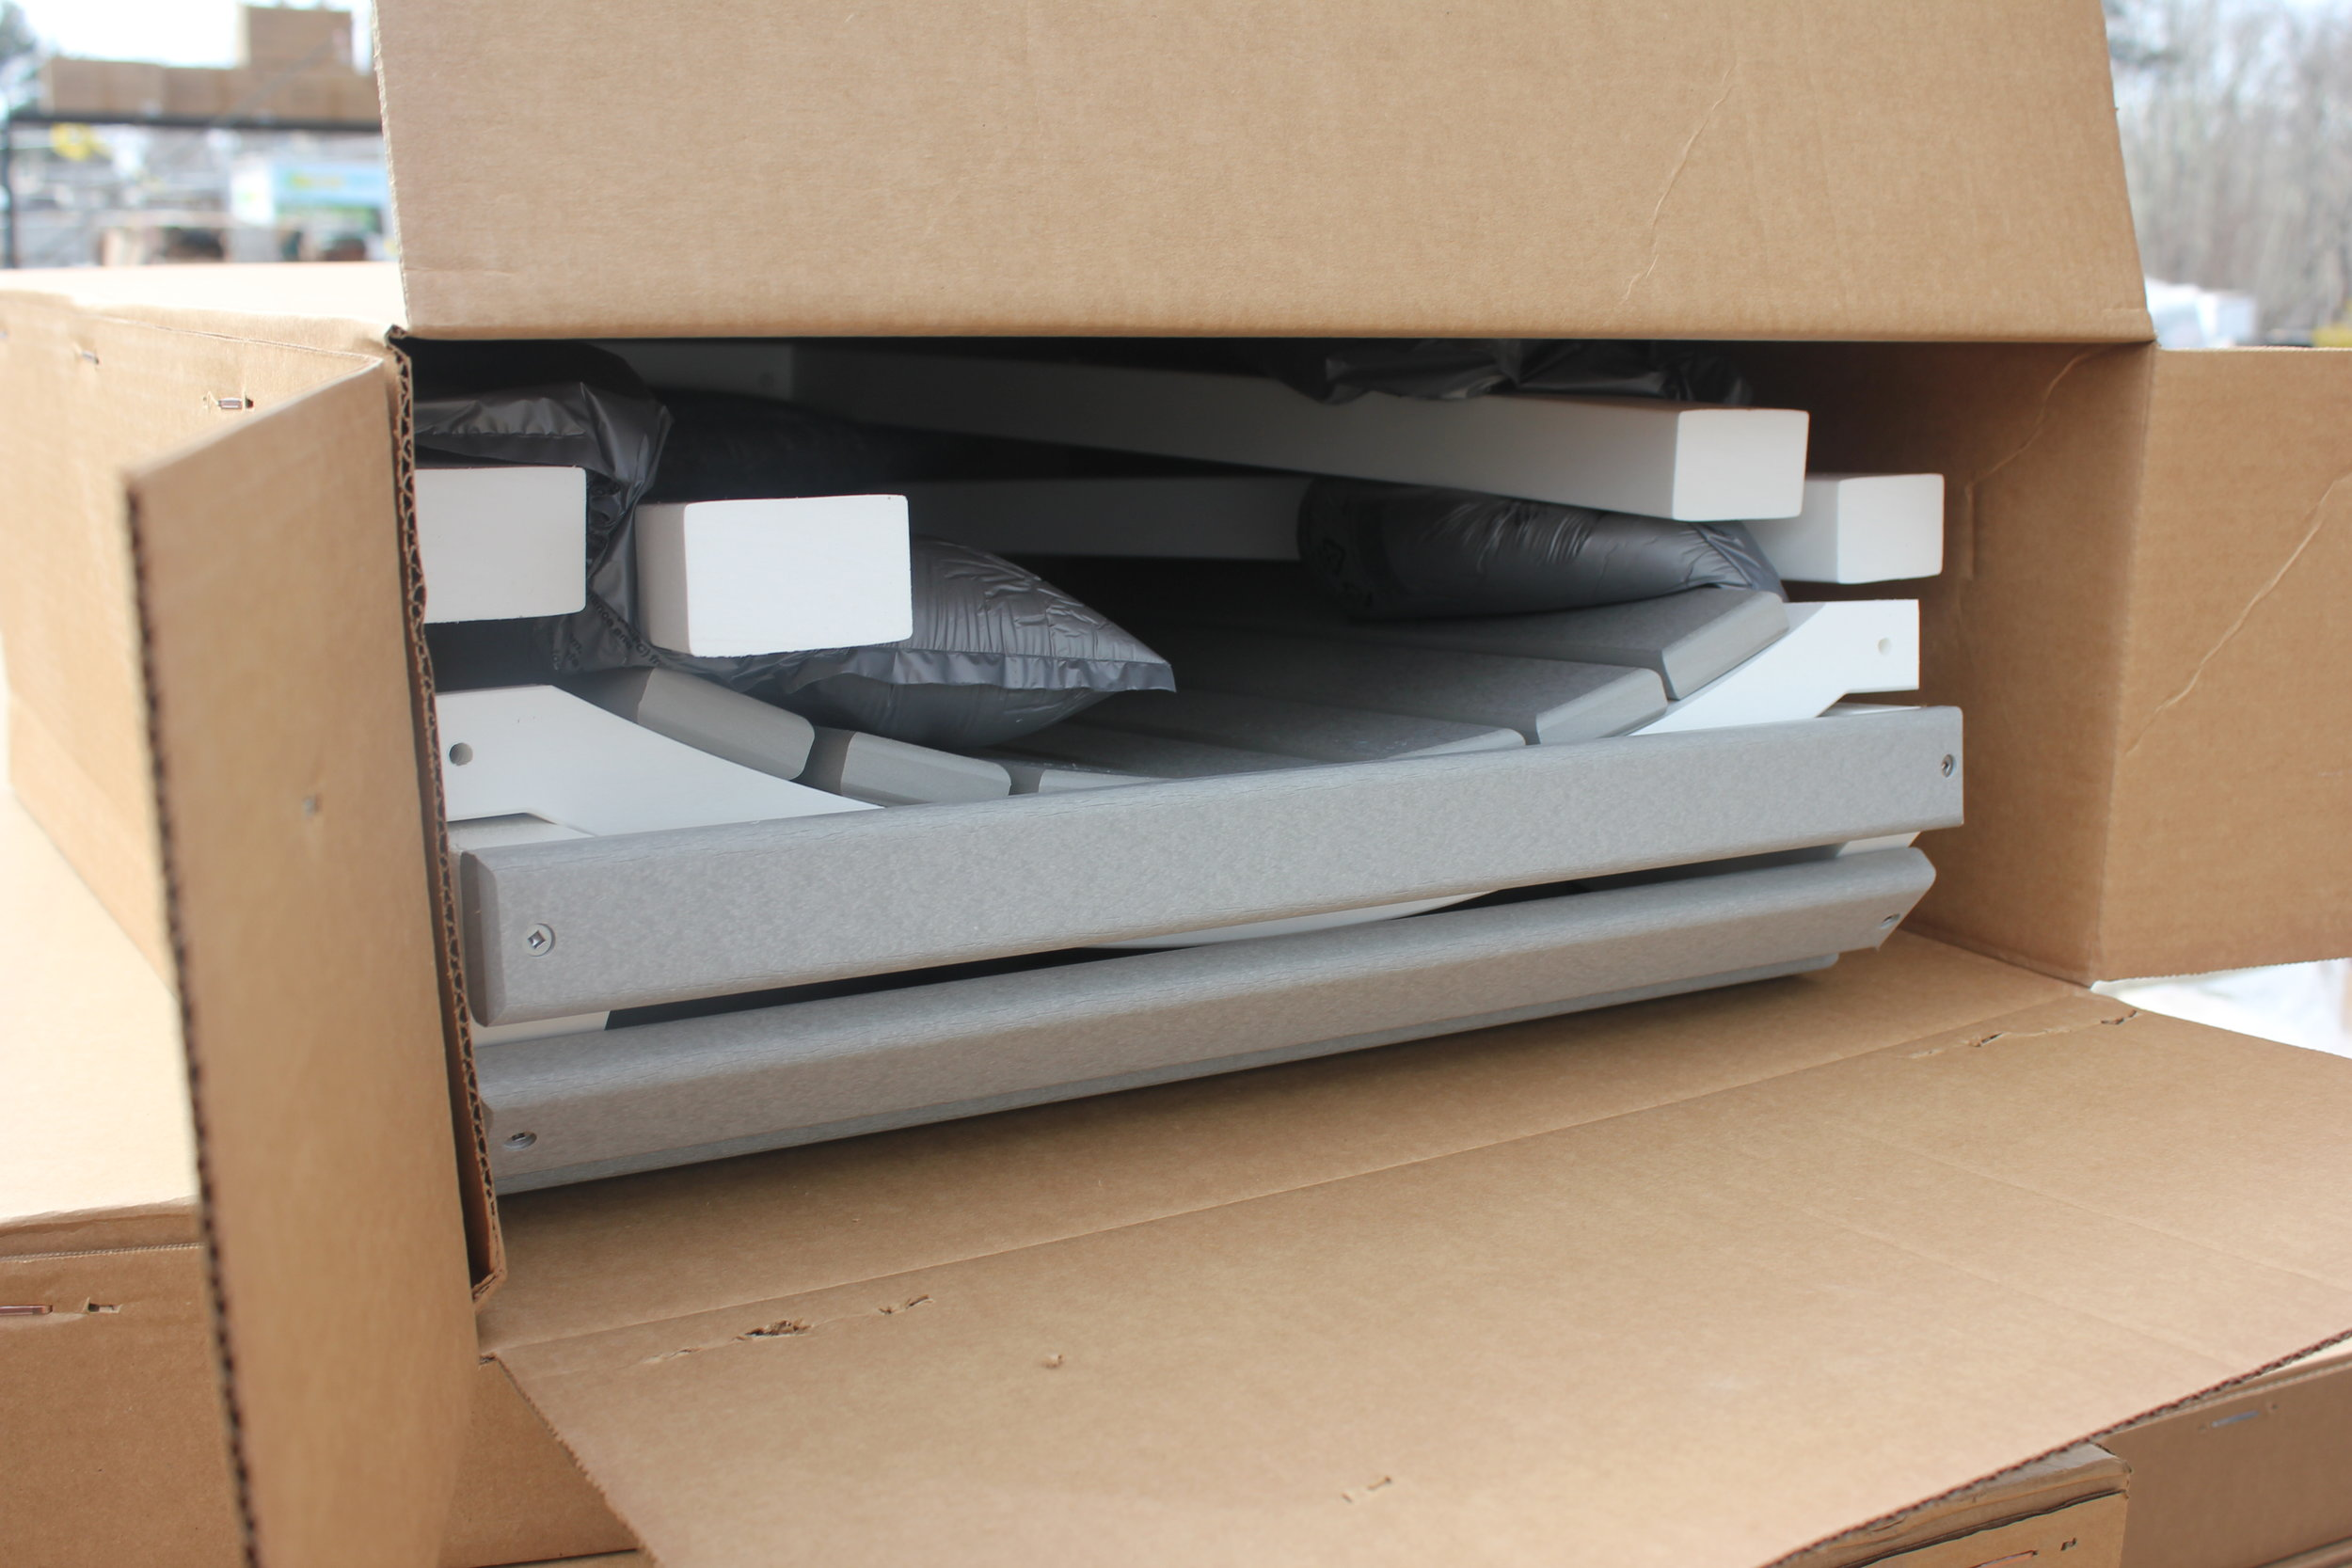 Sealed Foam Packaging - Each piece is cushioned by sealed foam packaging to protect your new purchase during shipping.